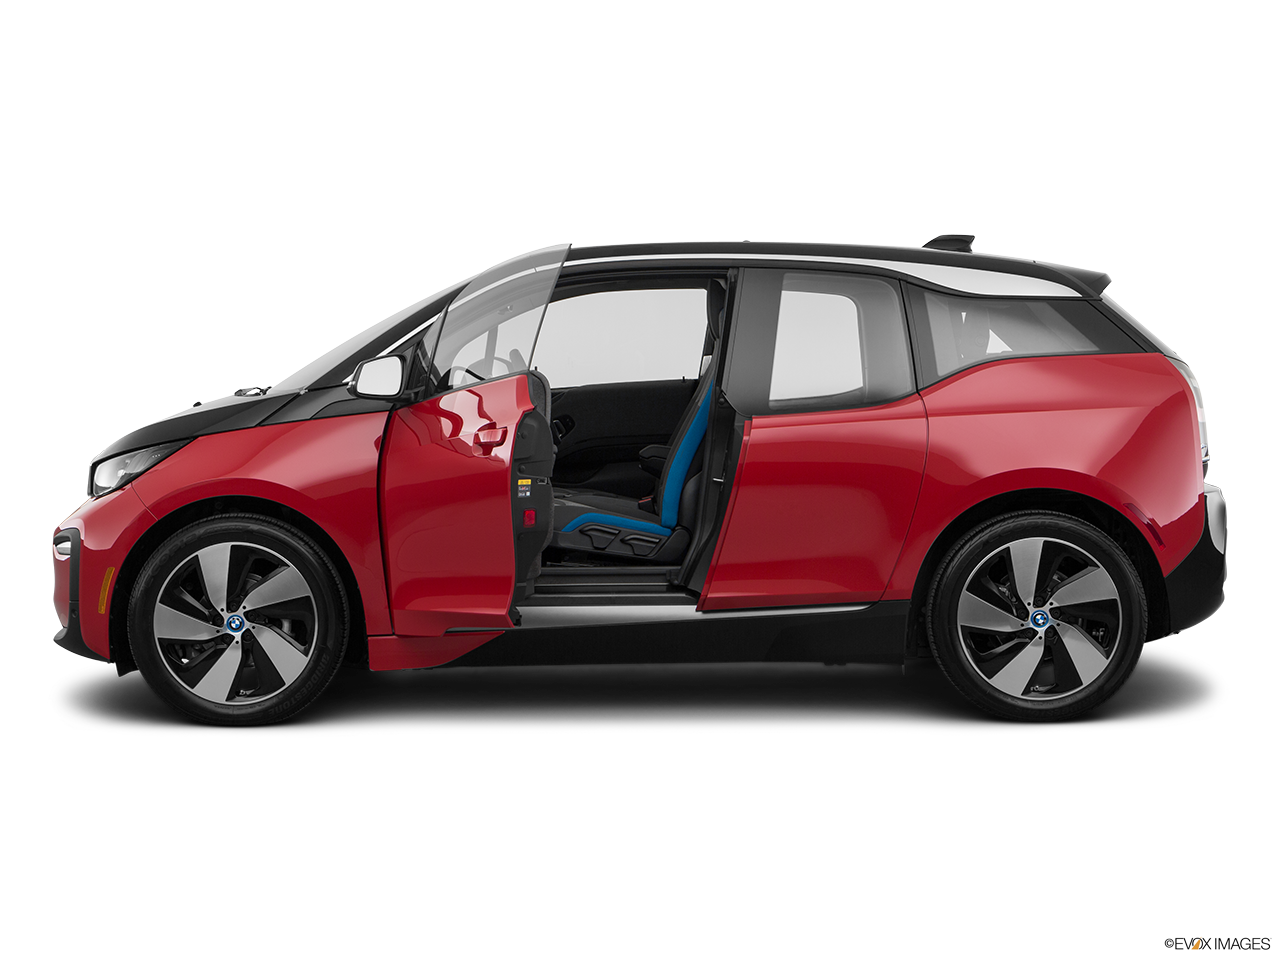 Side view of the BMW i3